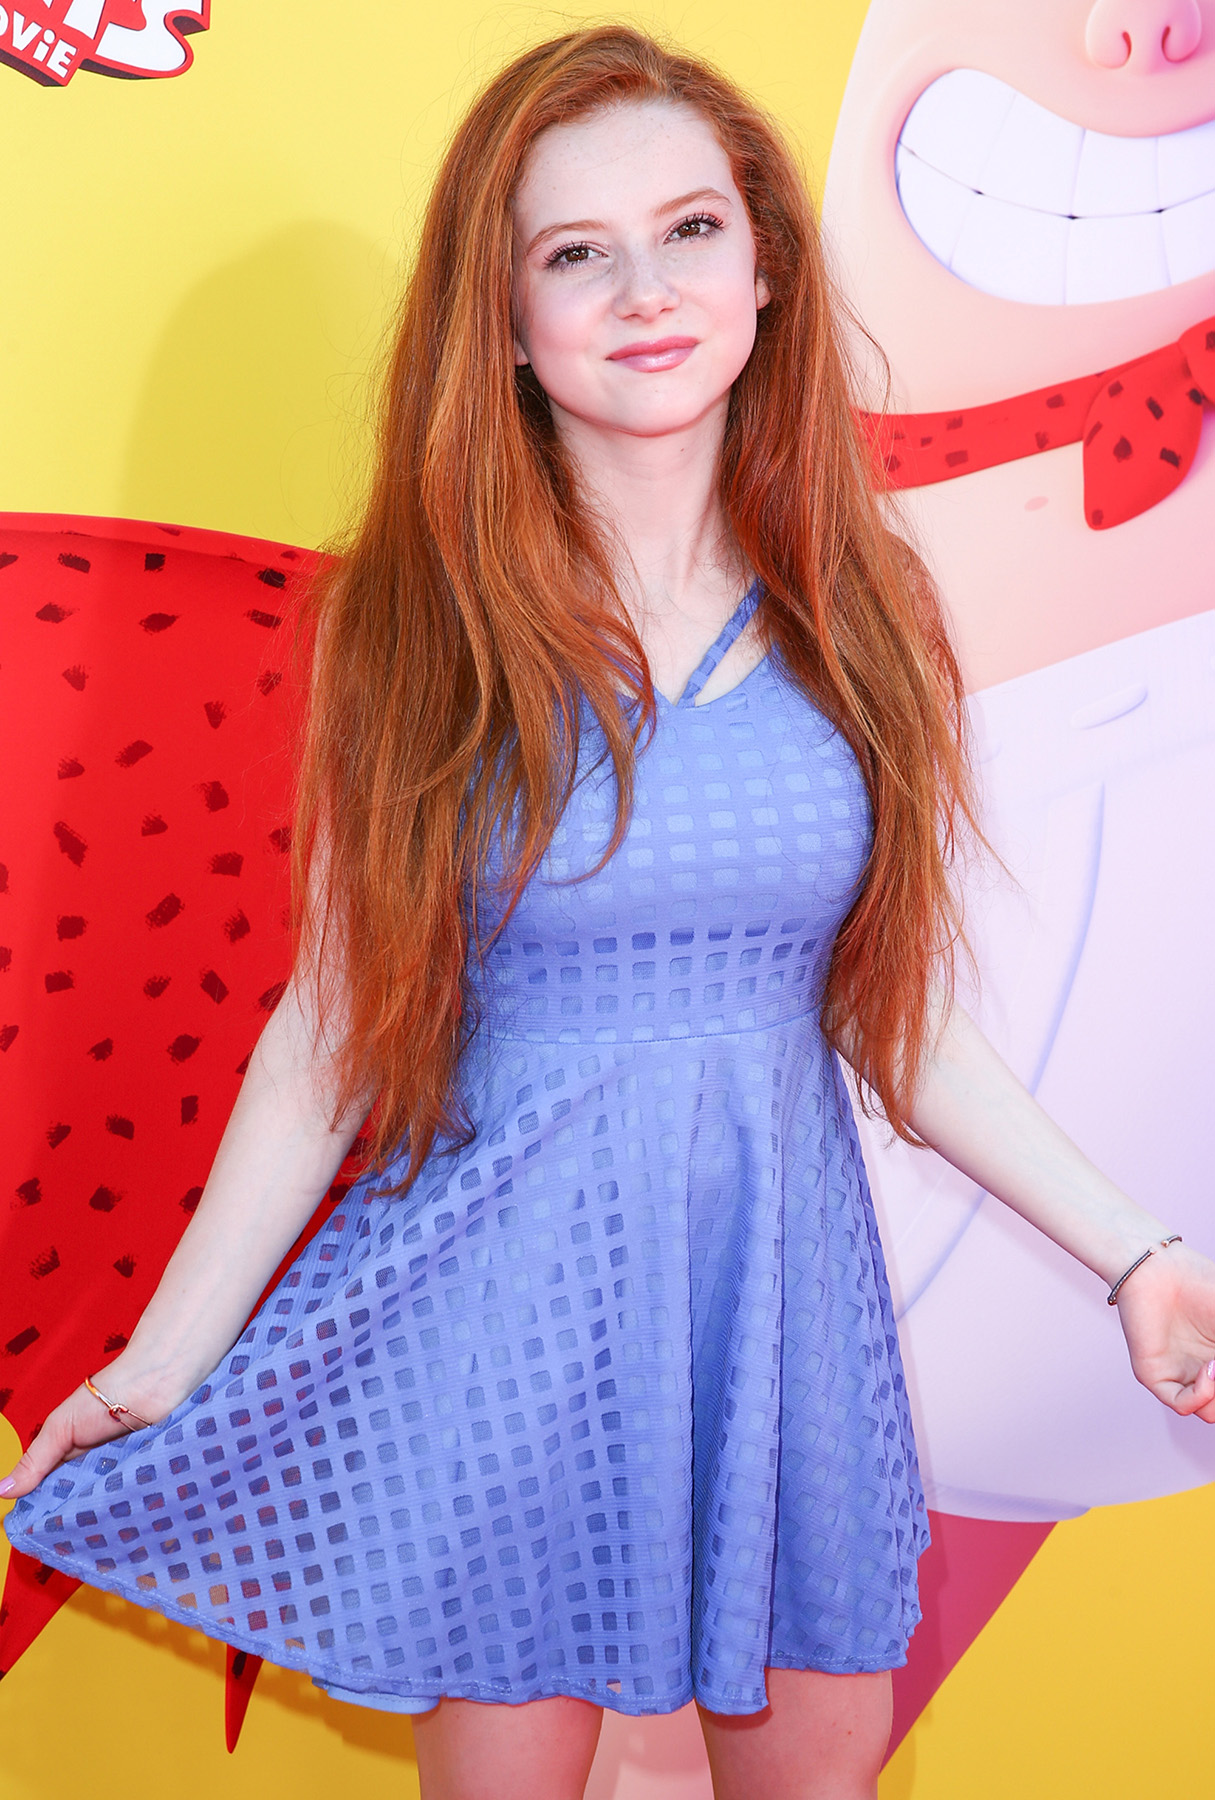 Francesca Capaldi Dog With A Blog Wiki Fandom Powered By